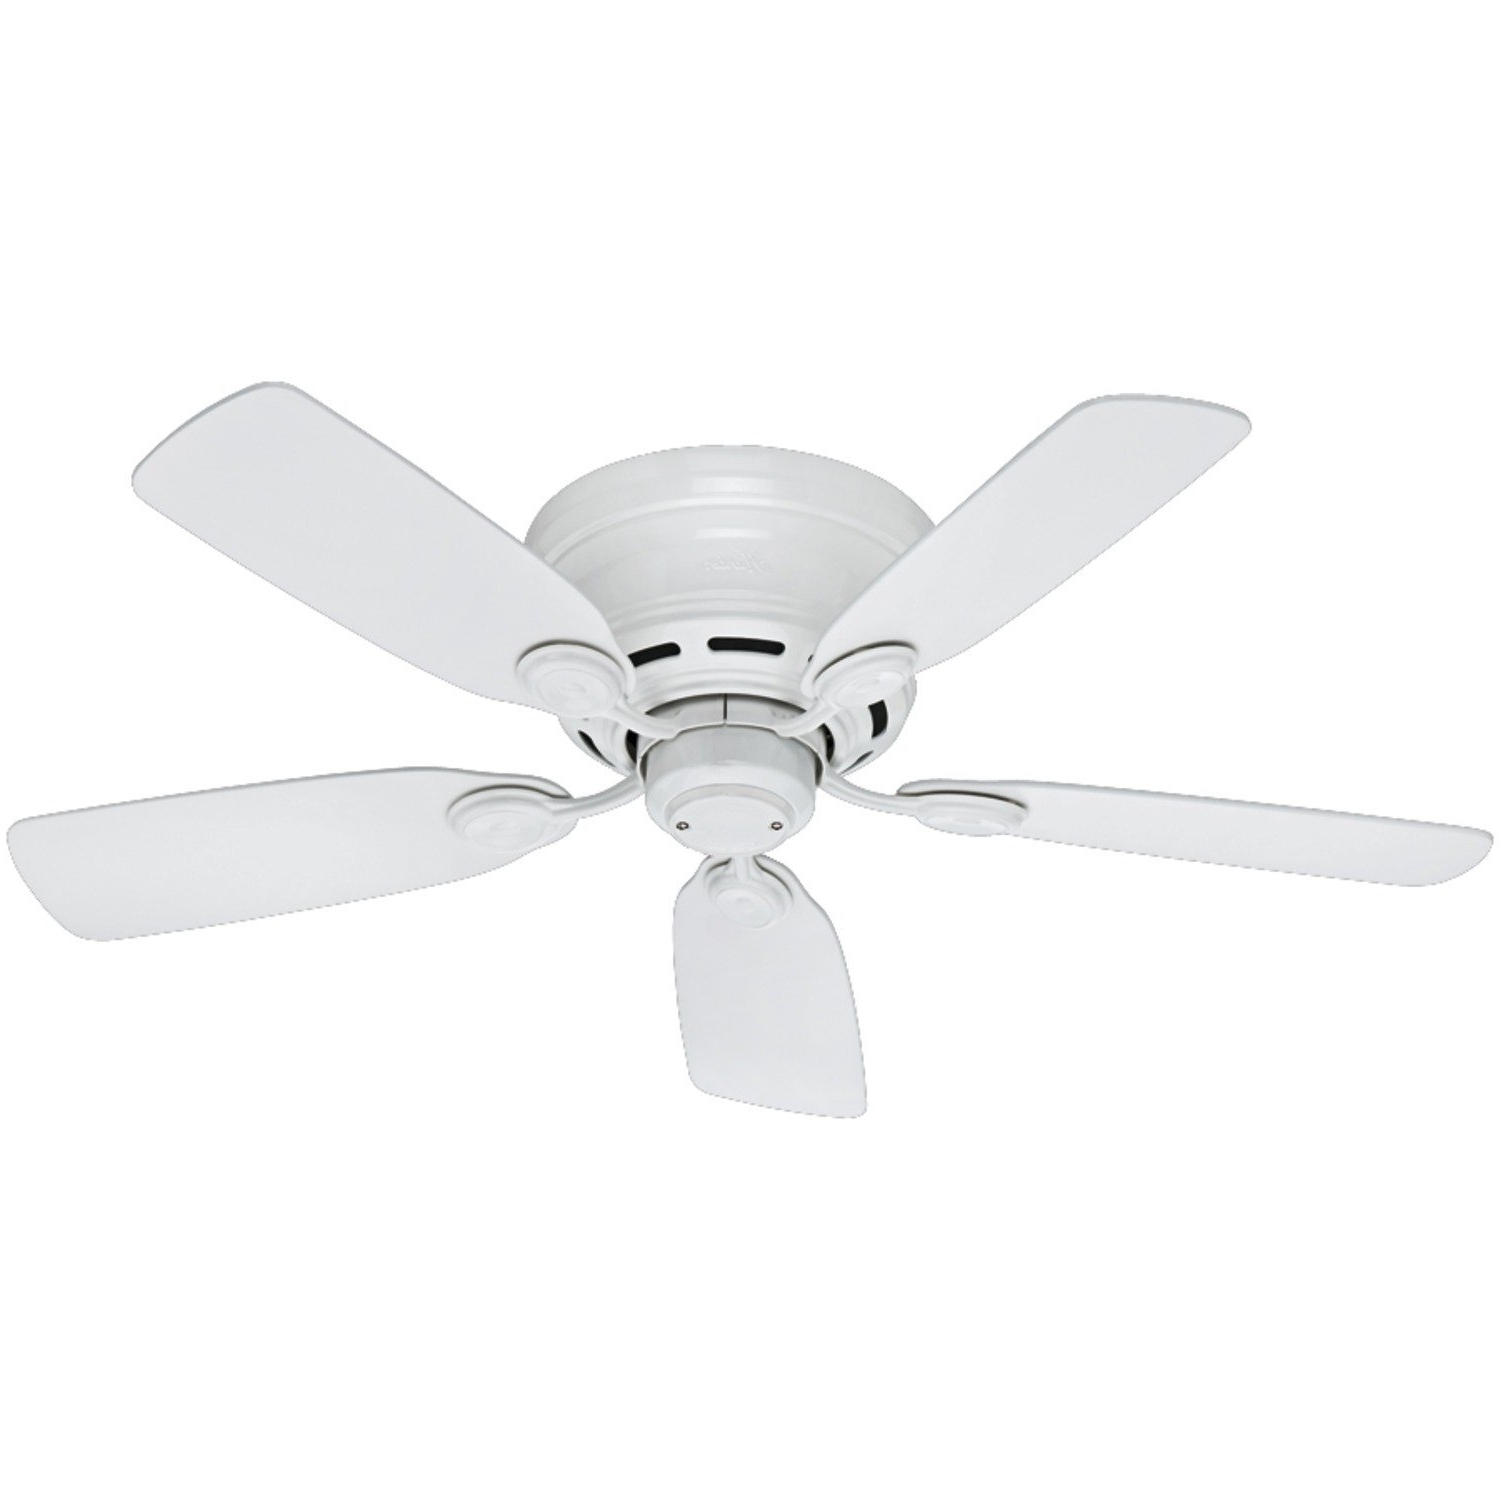 Flush Mount Ceiling Fans Review – Choose The Best Regarding 2018 42 Inch Outdoor Ceiling Fans (View 10 of 20)